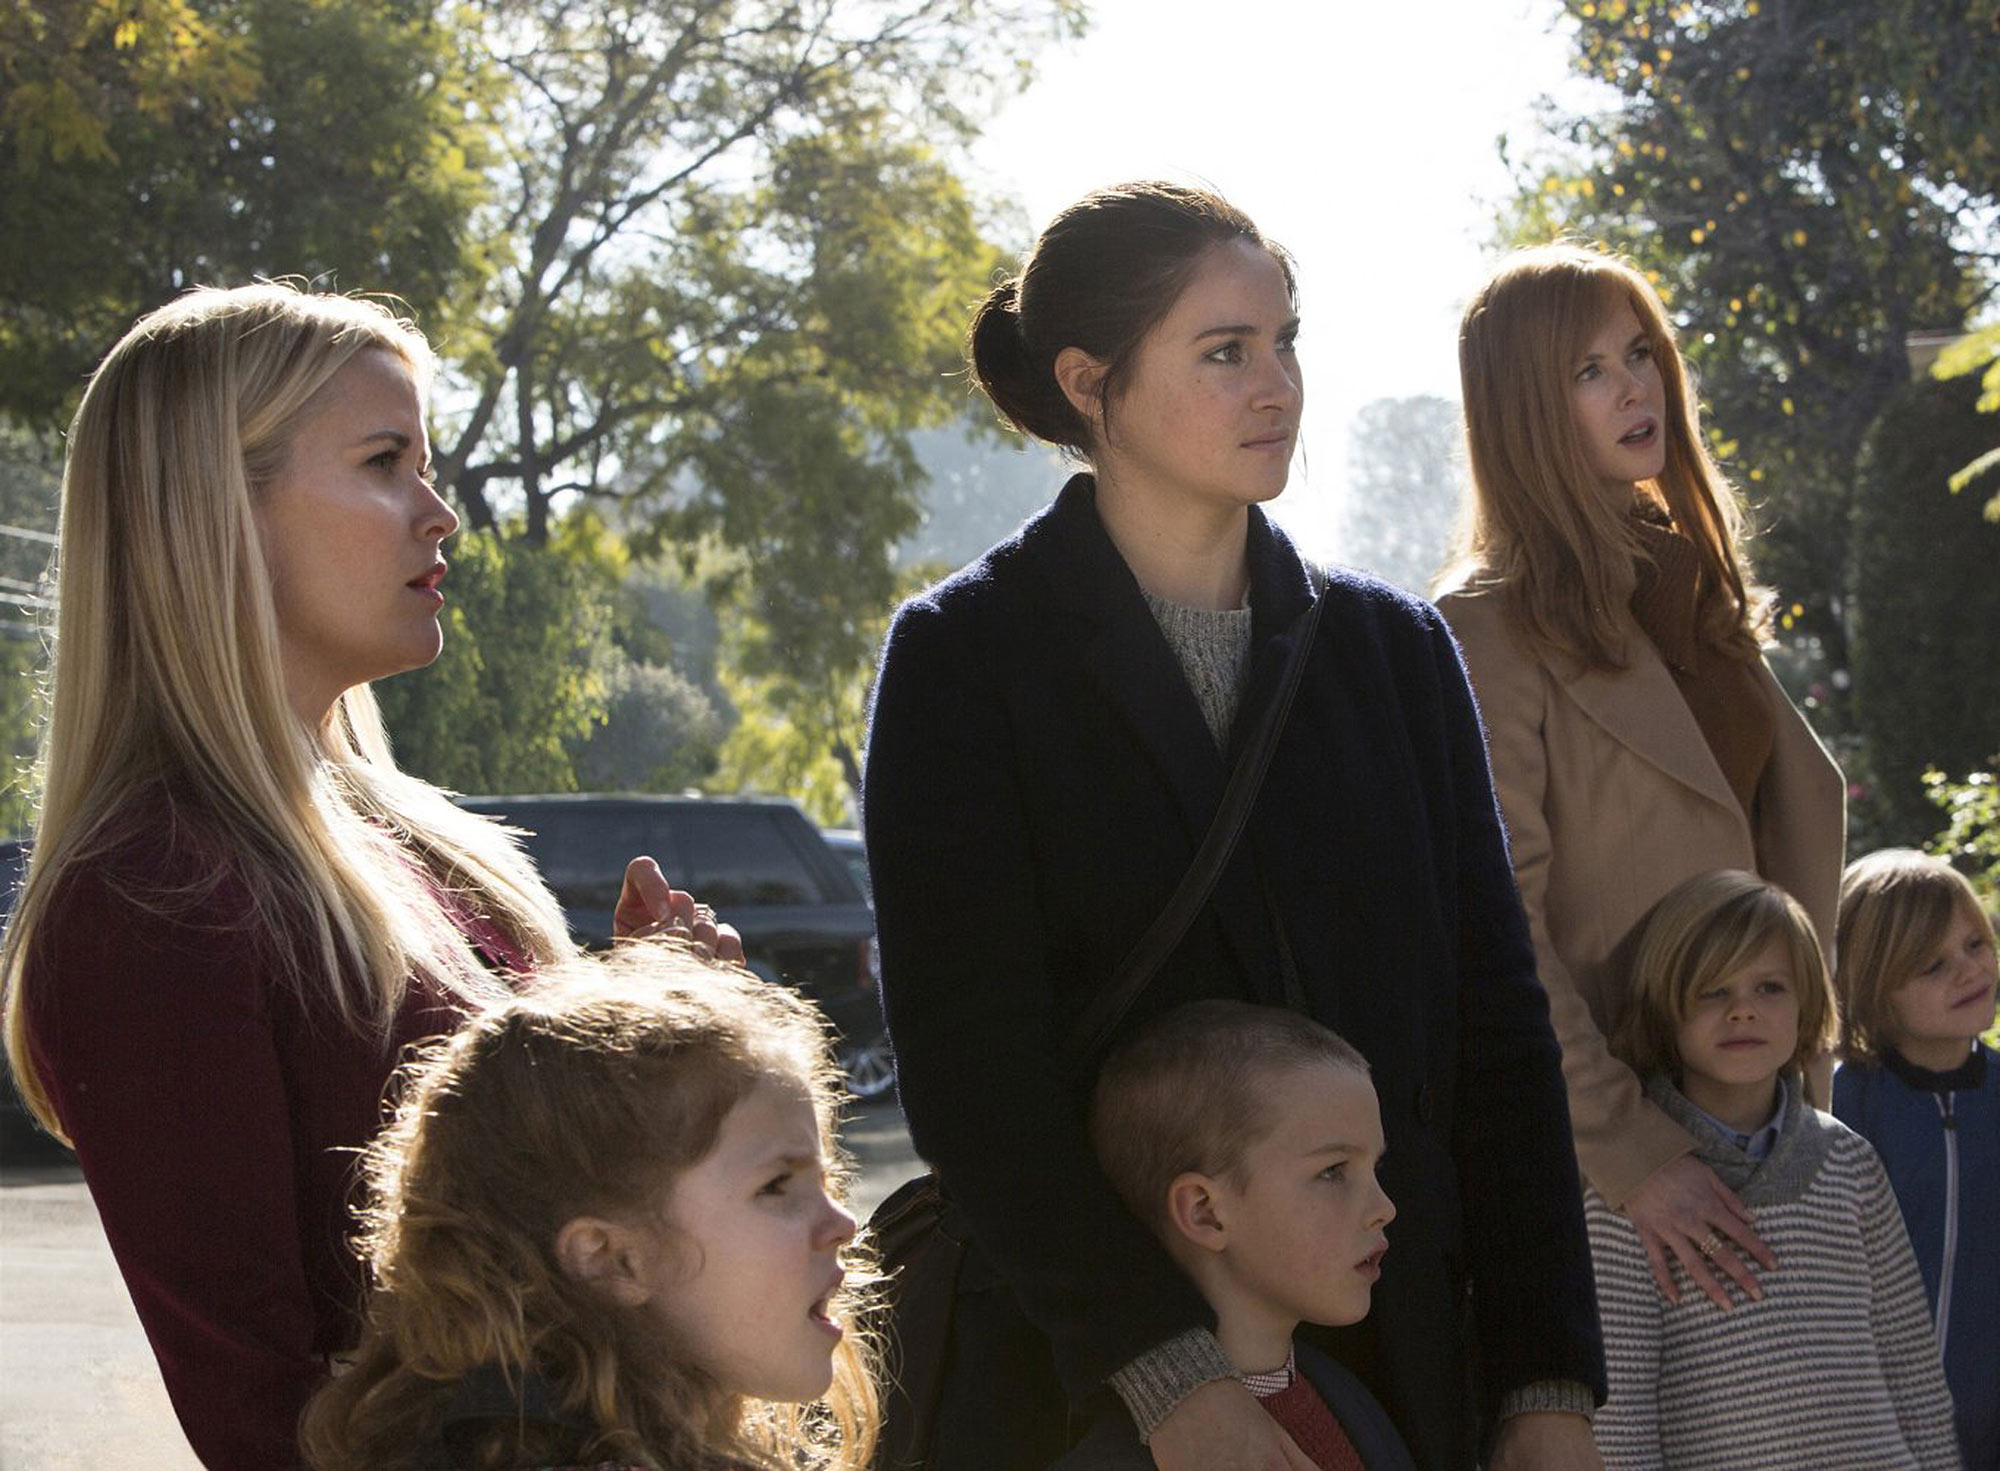 Why Reese Witherspoon Produced Big Little Lies: 'So Often I'm the Only Woman on a Set Full of Men'